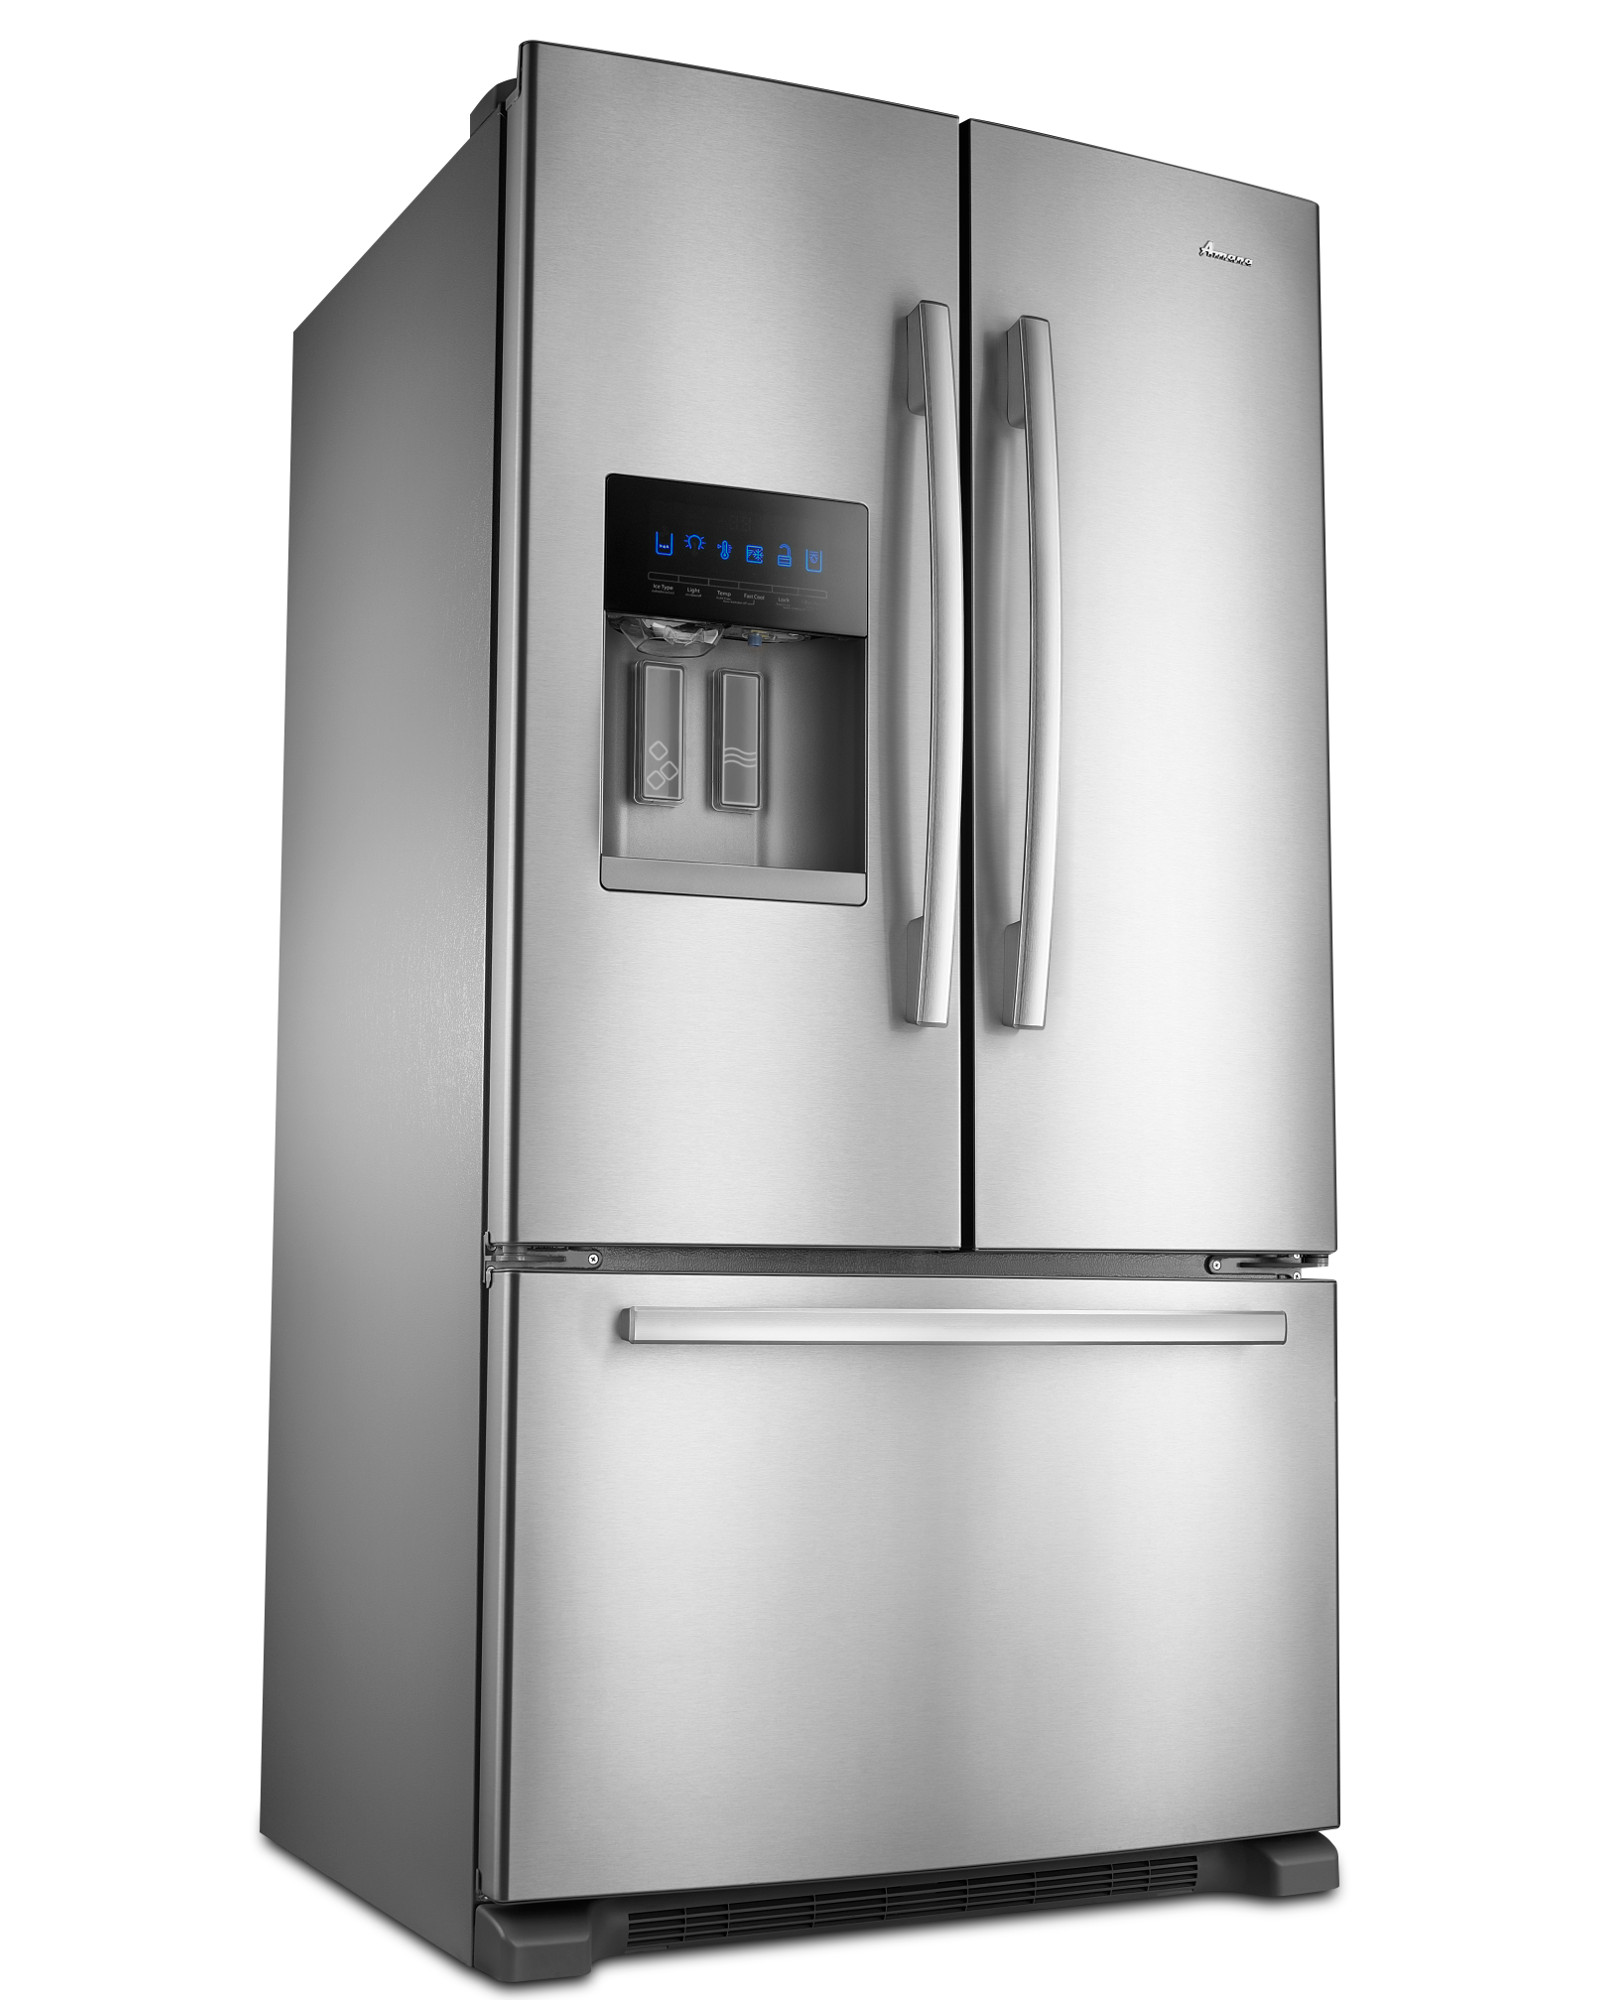 Amana AFI2539ERM 24.7 cu. ft. French Door Bottom-Freezer Refrigerator w/ Fast Cool Option - Stainless Steel